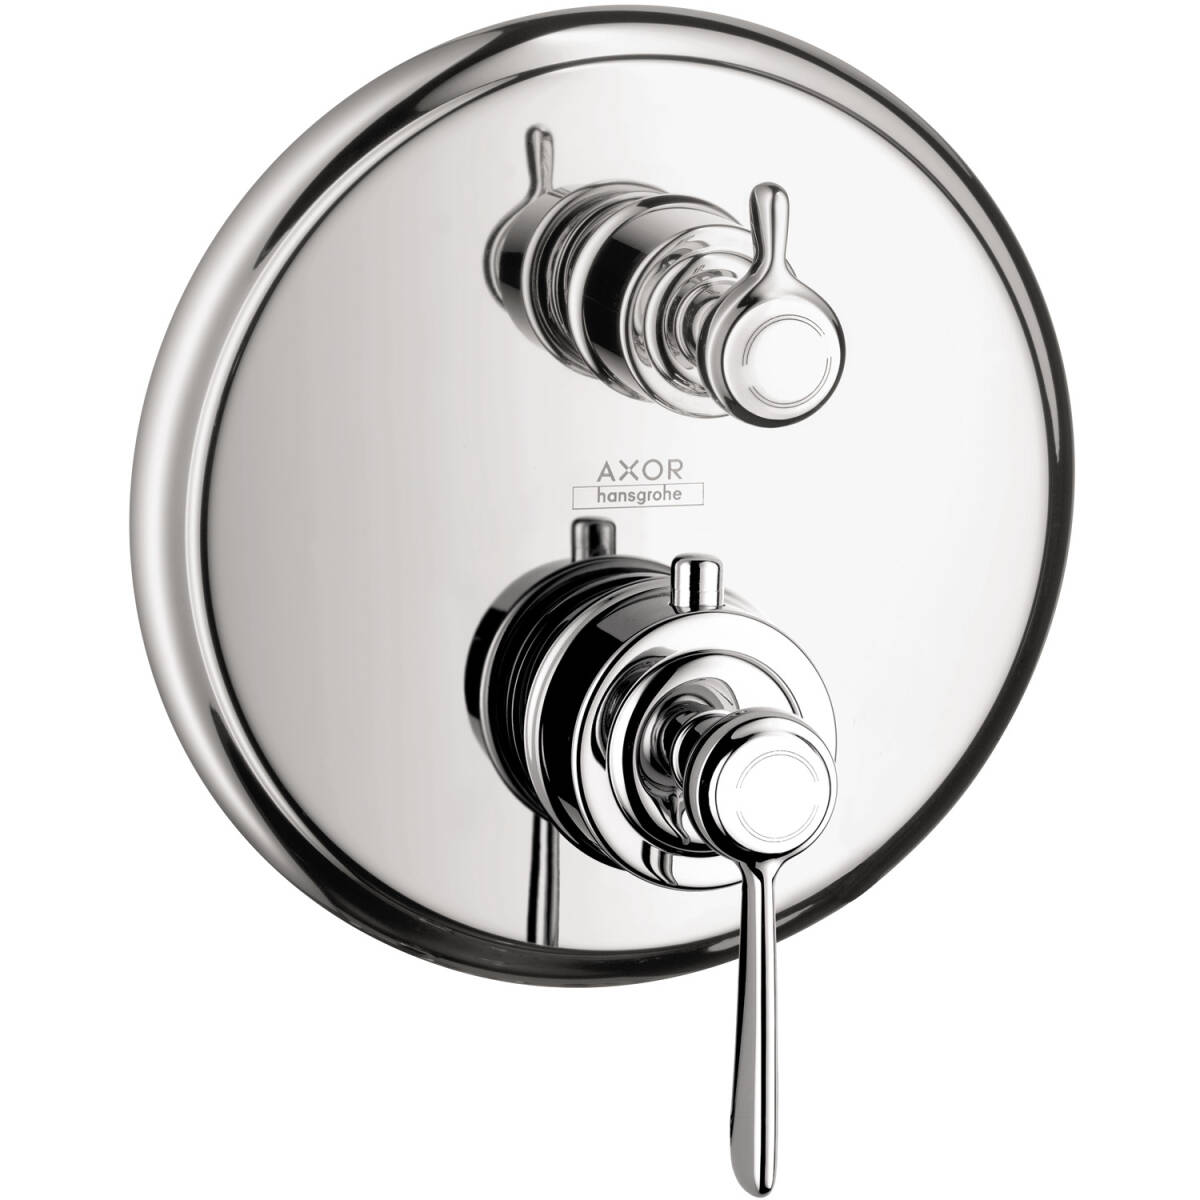 Thermostat for concealed installation with lever handle and shut-off valve, Chrome, 16801001